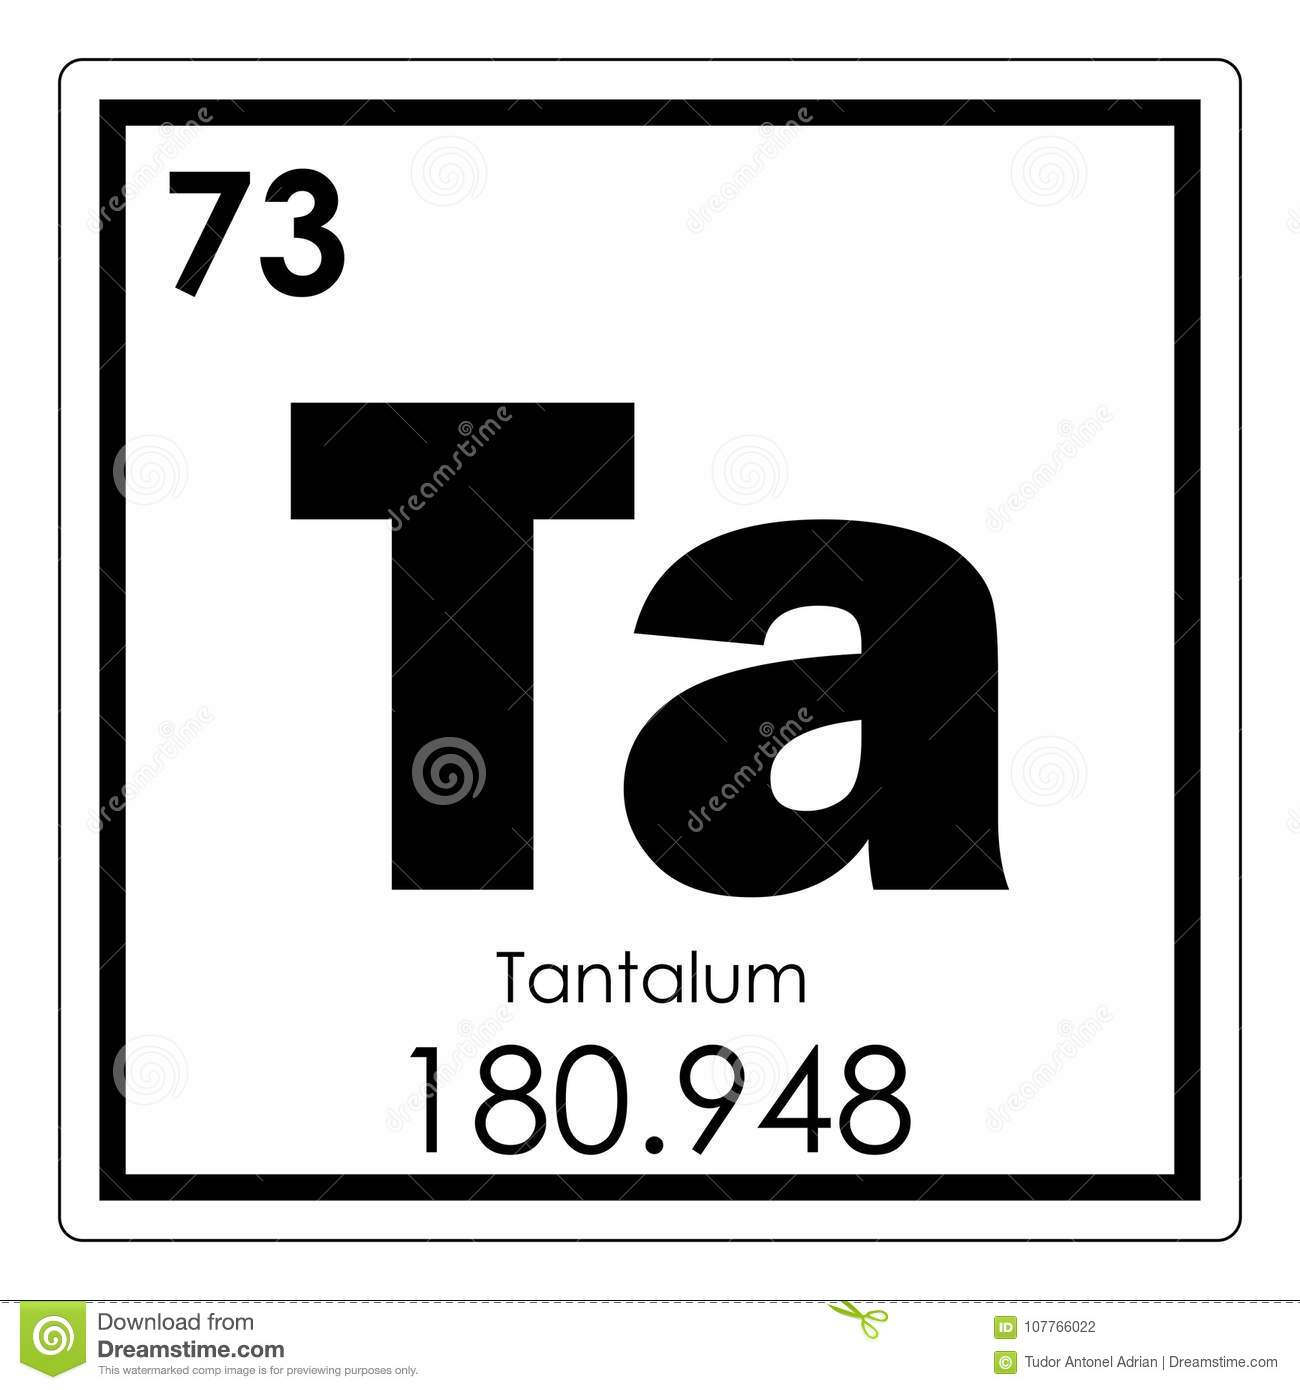 Tantalum Chemical Element Stock Illustration Illustration Of